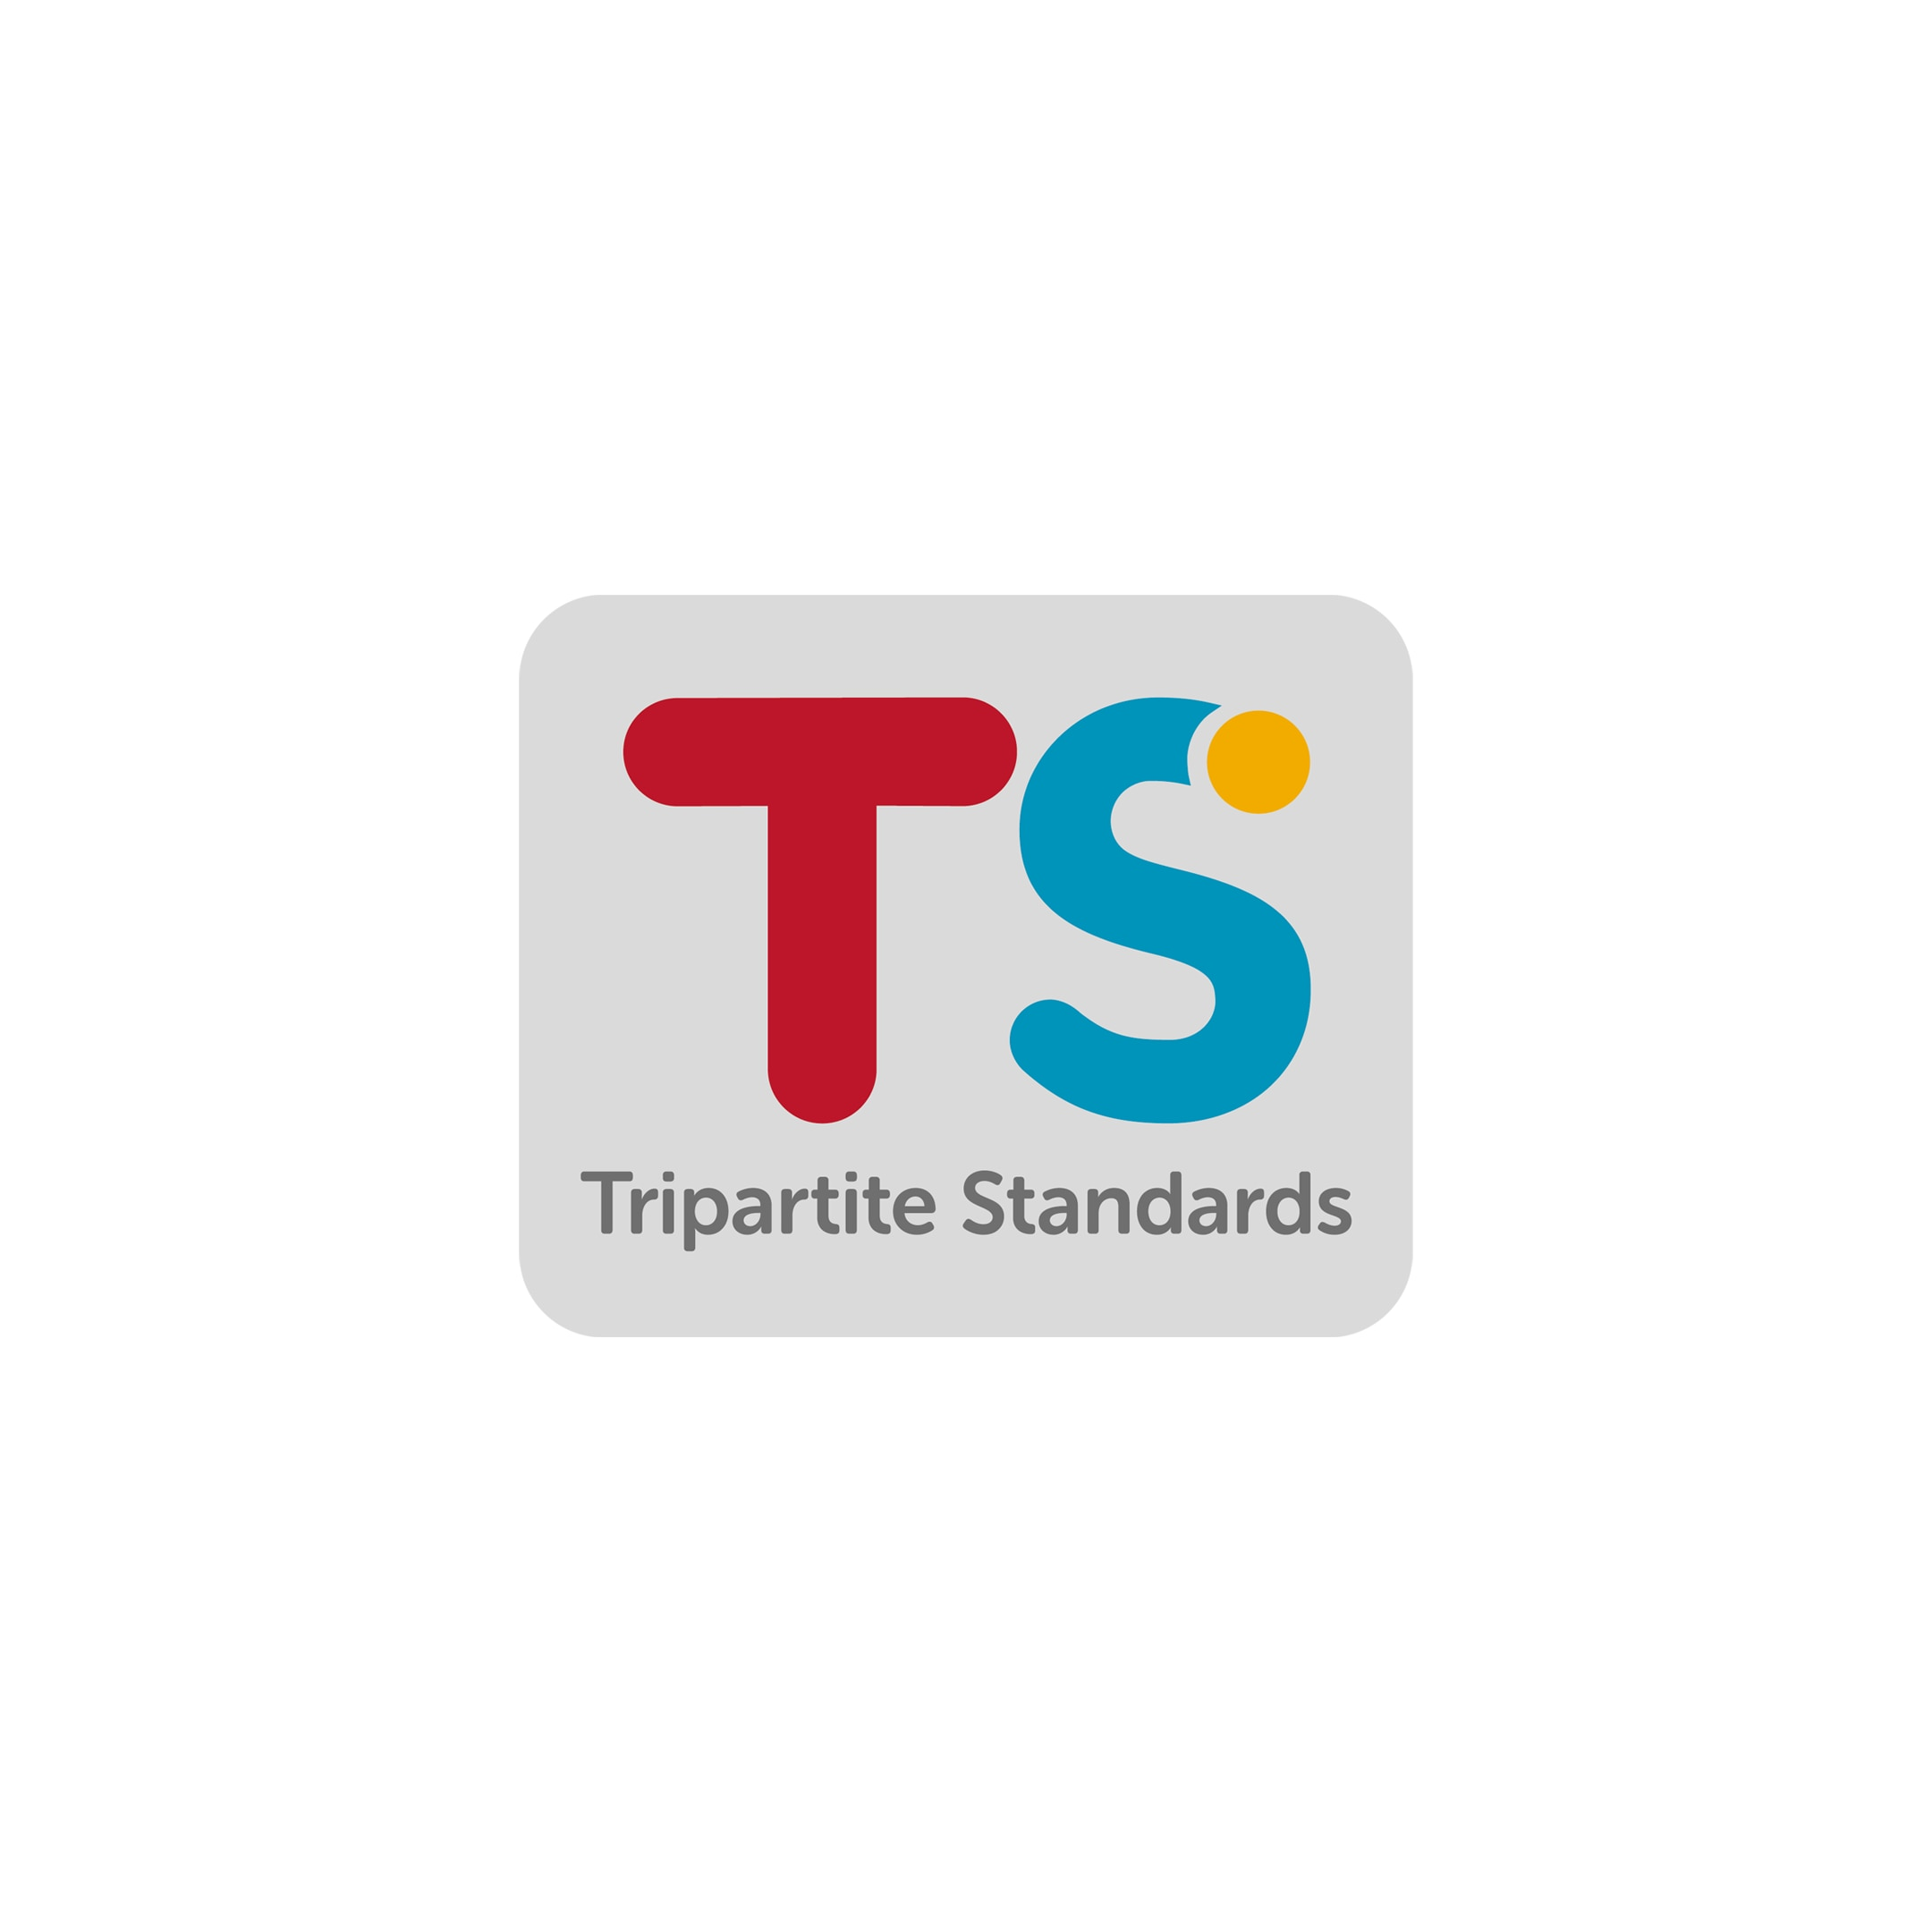 Lidl Singapore Pte. Limited - Sustainability - Tripartite Standards